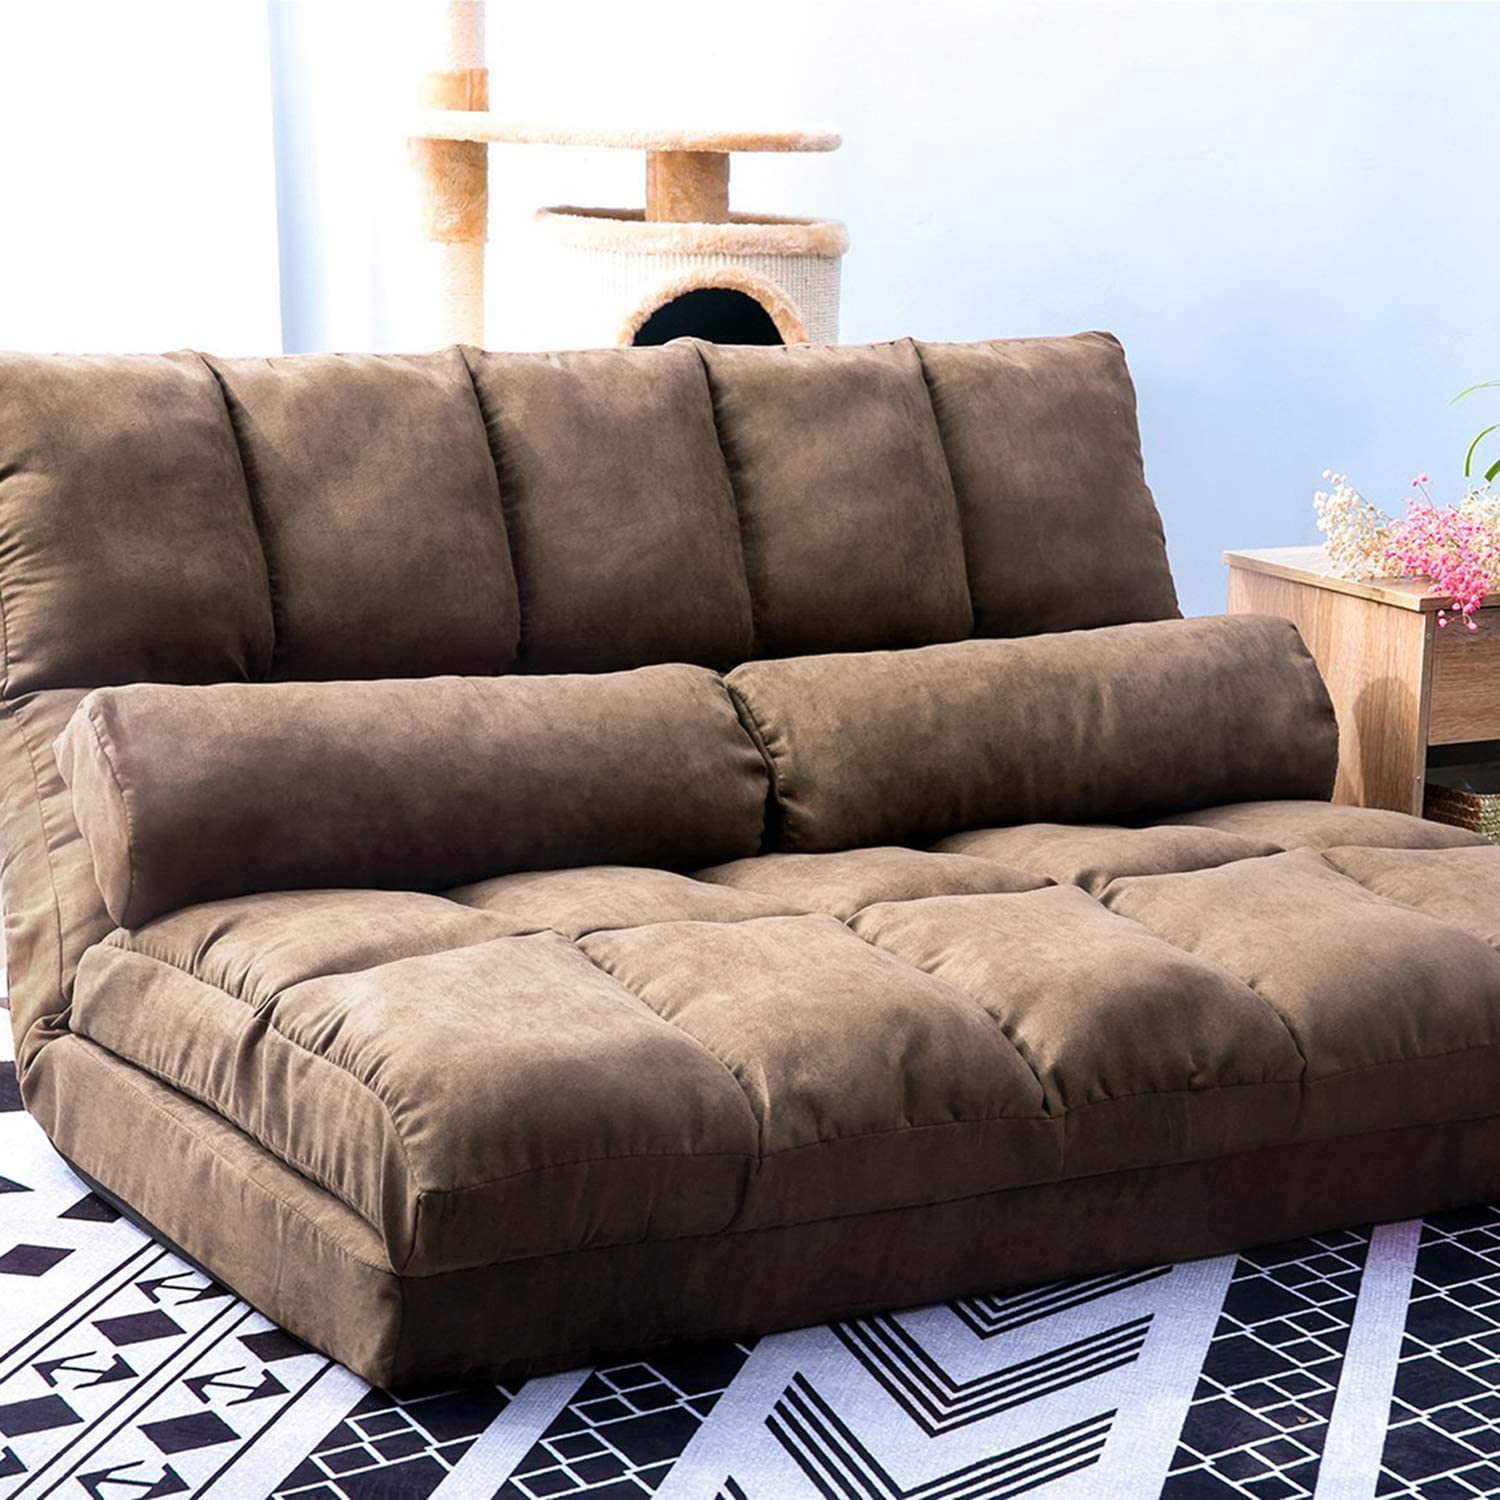 - Amazon.com: YSKWA Double Chaise Lounge Sofa Chair Floor Couch With